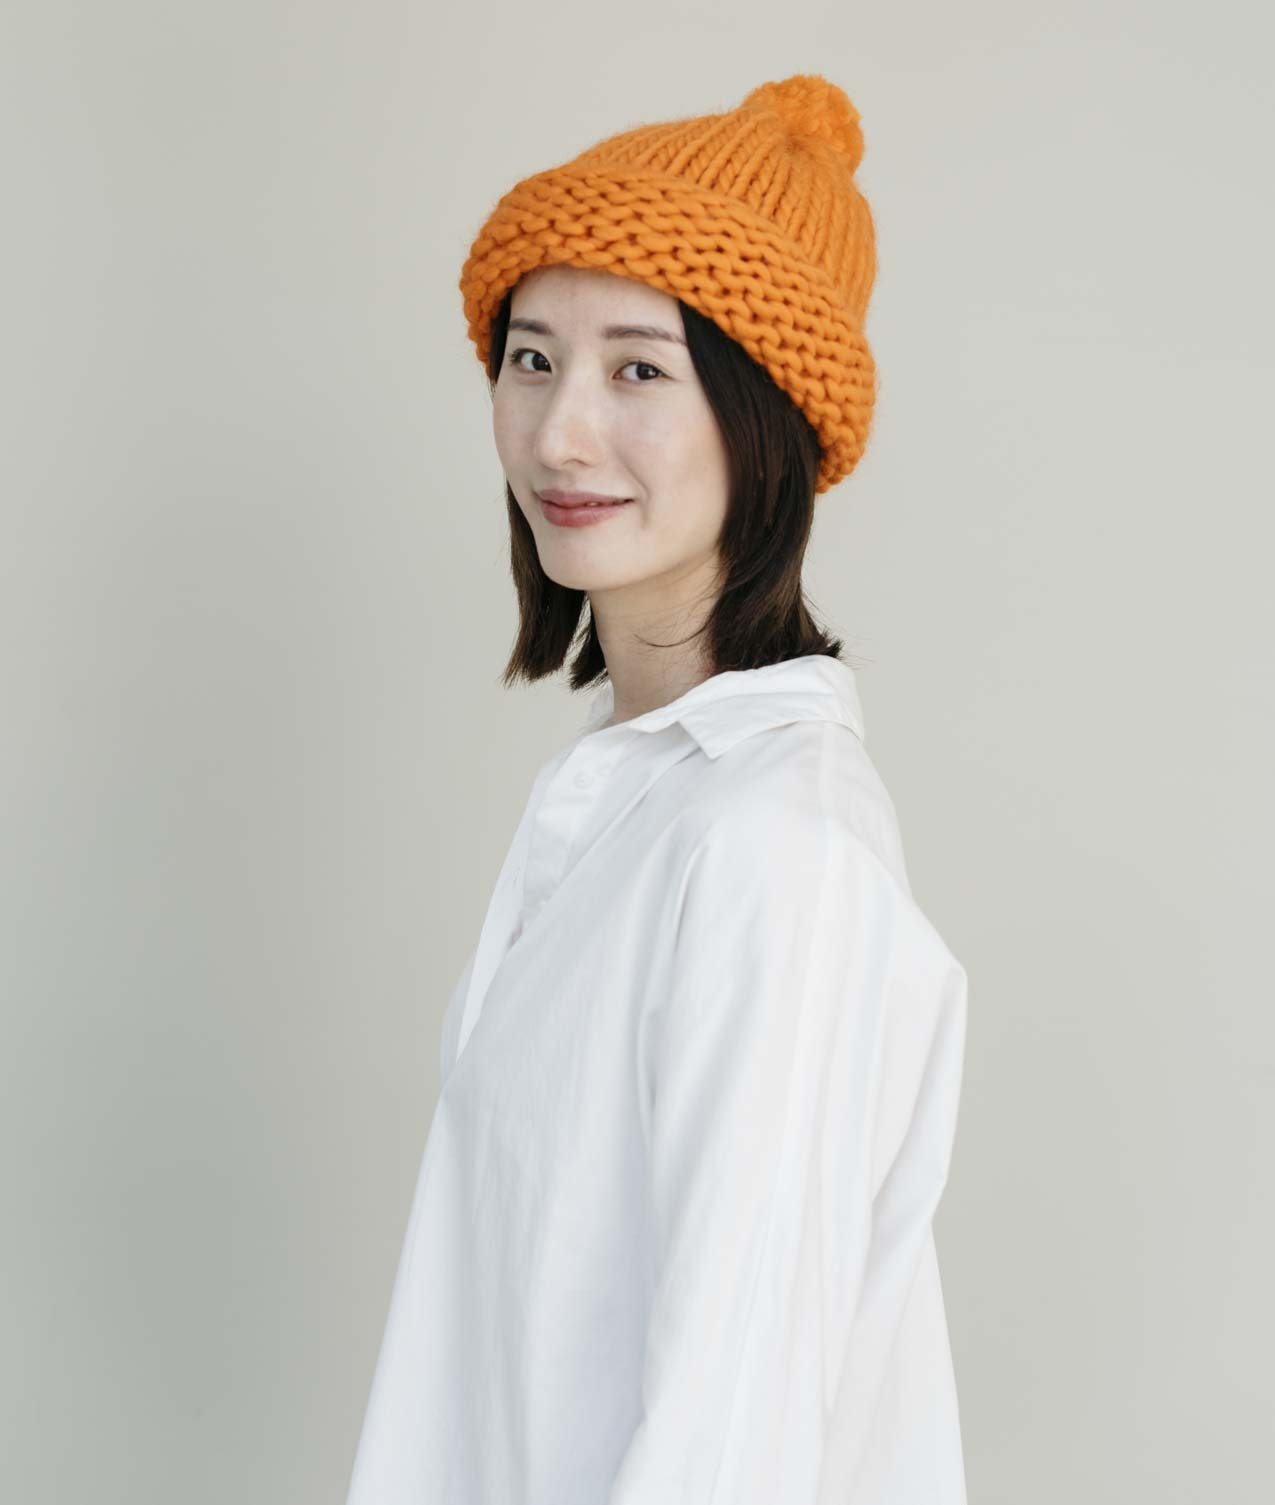 Easy Wool Collection - Hats and Beanies - BLANCA BEANIE - 1